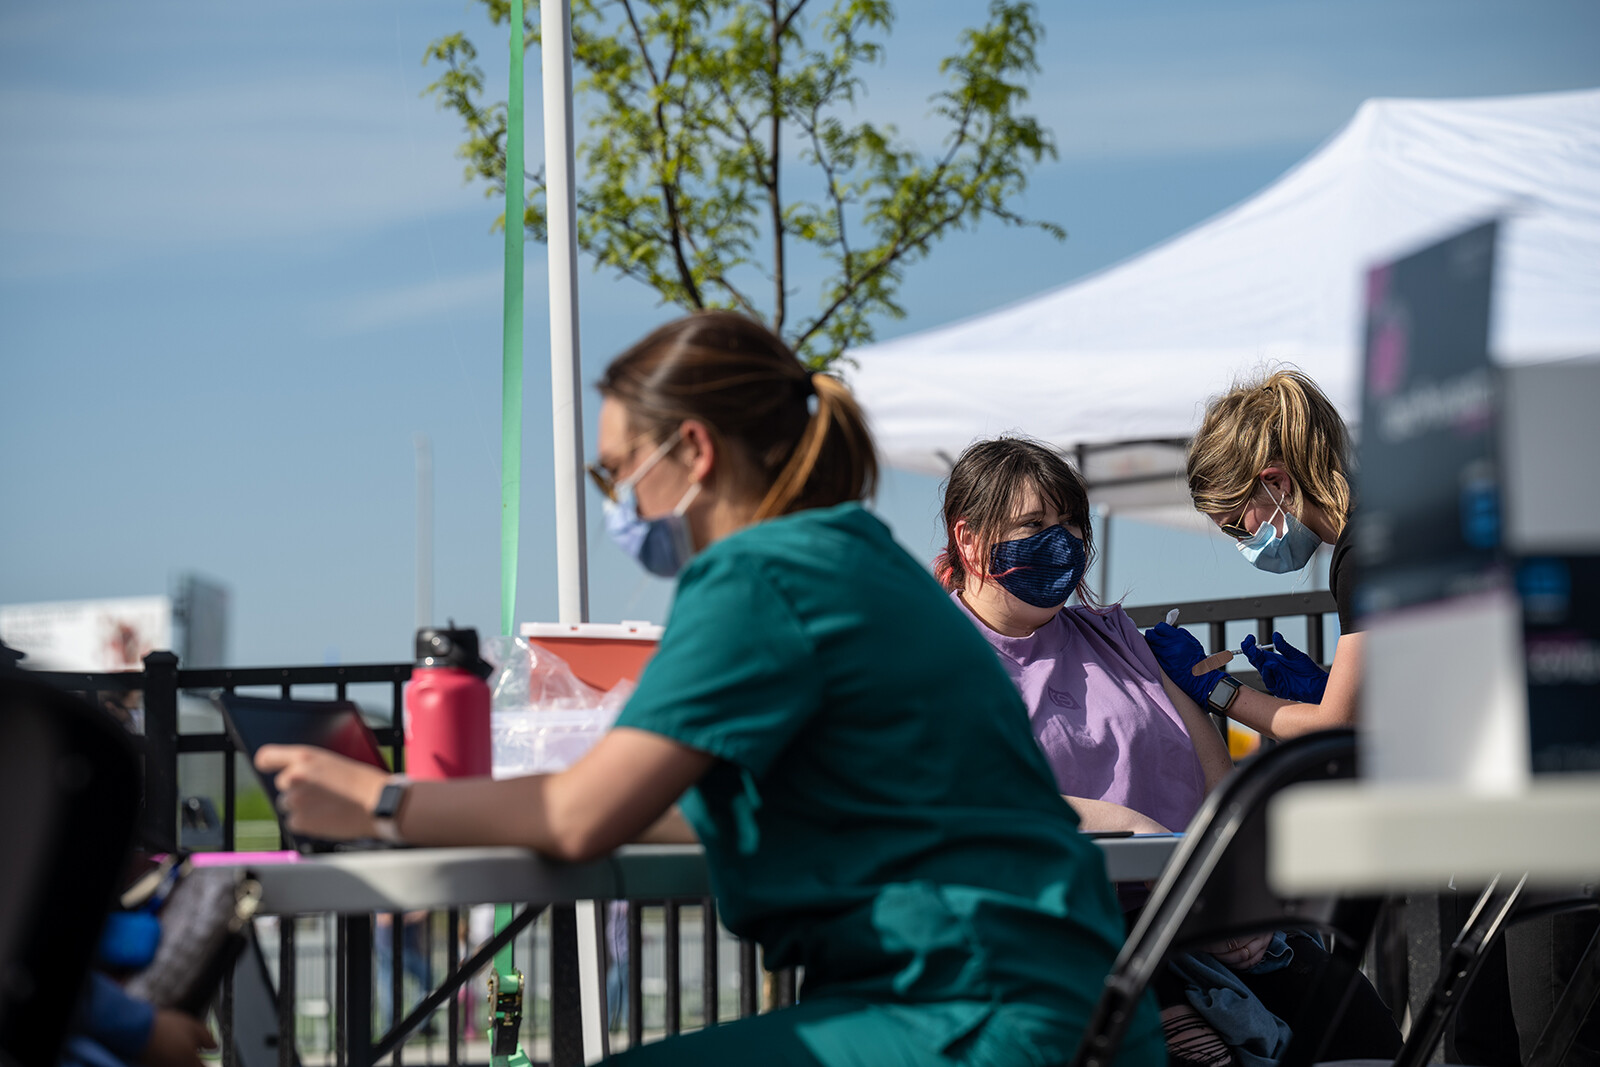 <i>Jon Cherry/Getty Images</i><br/>A nurse administers a shot of COVID-19 vaccine during a pop-up vaccination event at Lynn Family Stadium on April 26 in Louisville